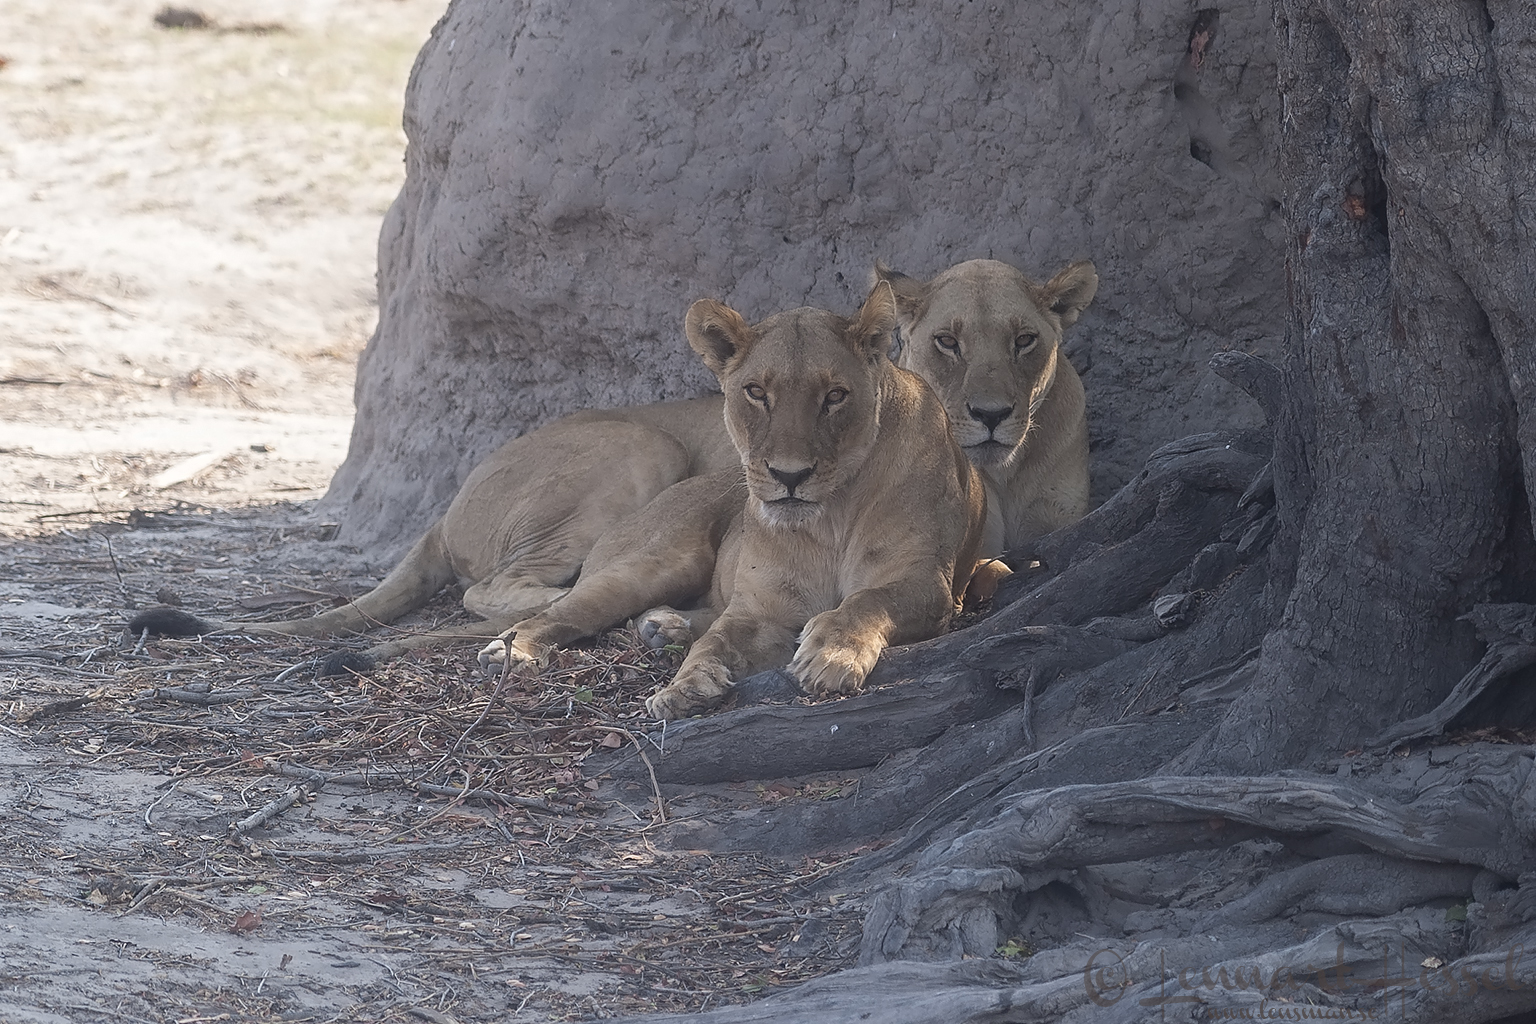 Lionesses on the road from Savuti to Chobe river, Botswana